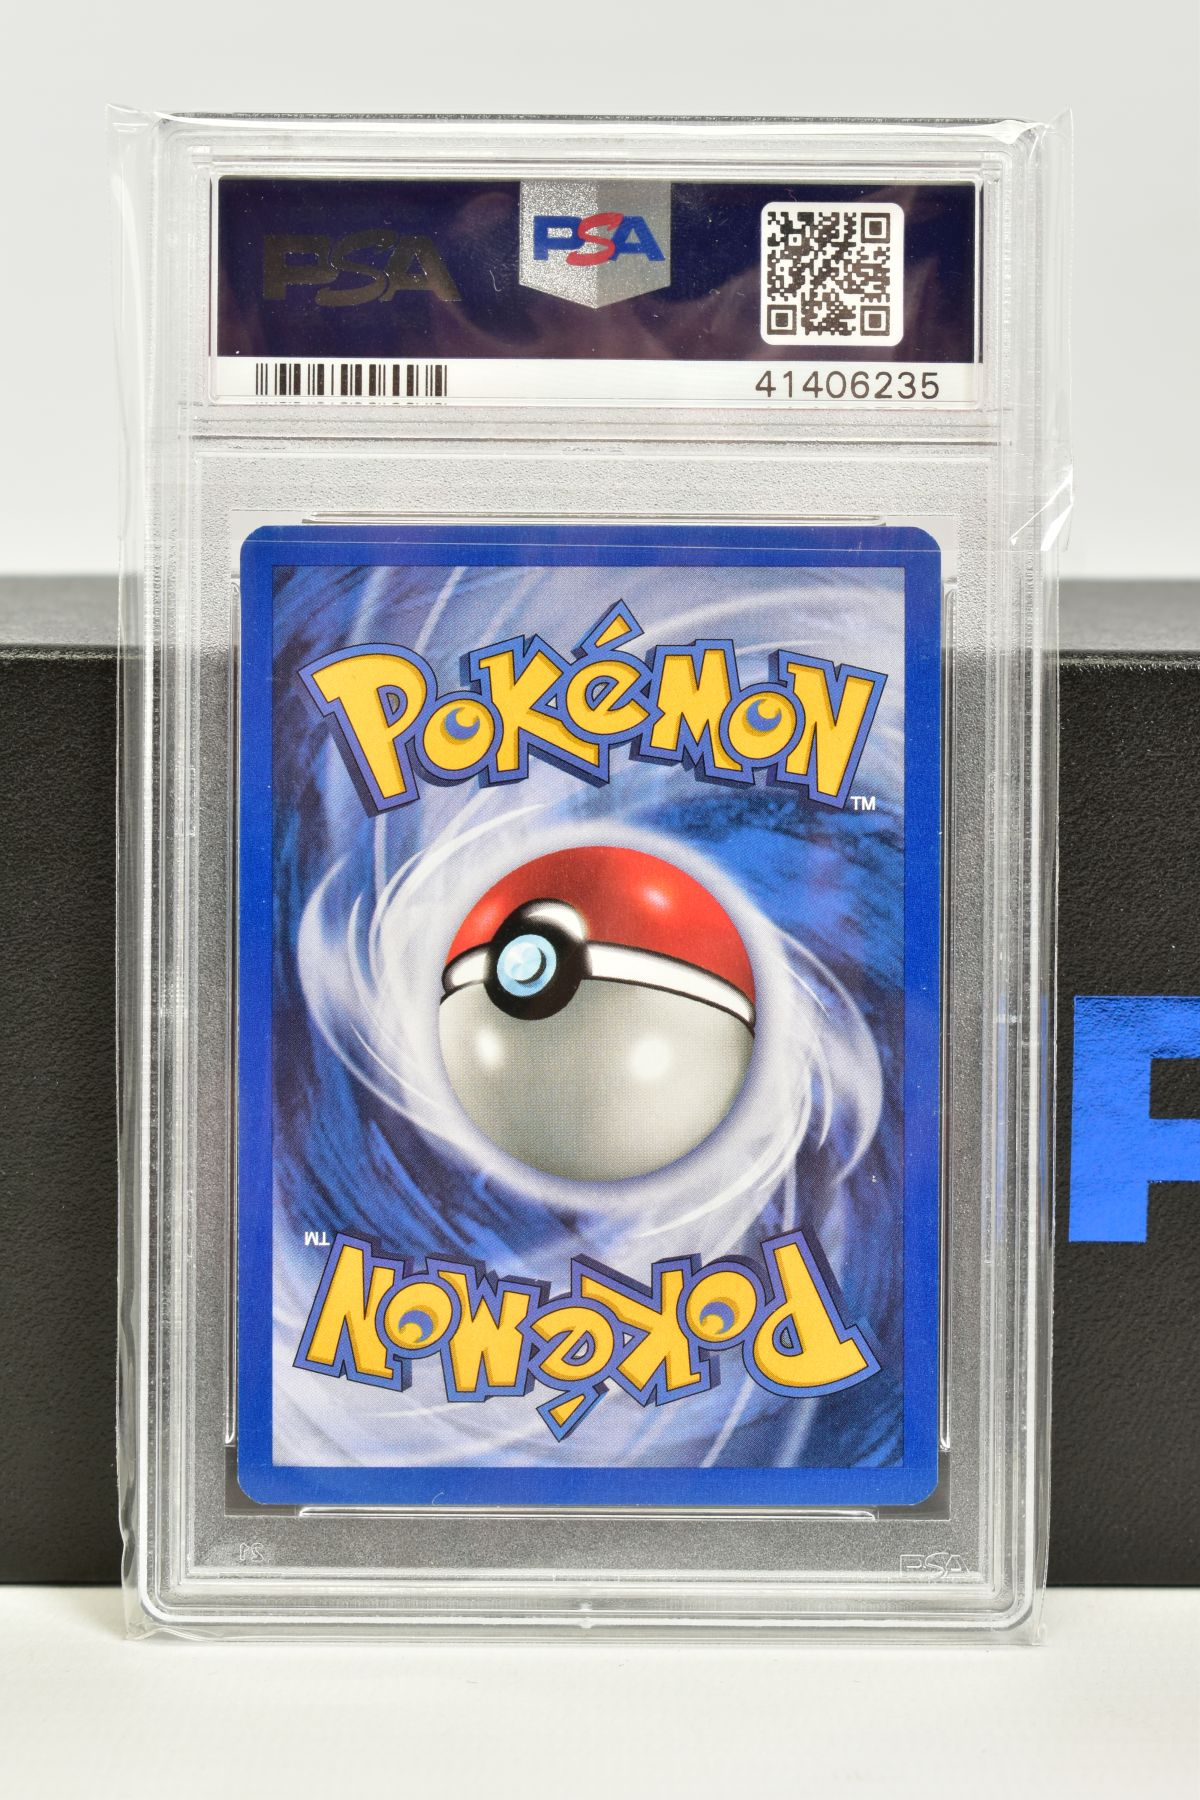 A PSA GRADED POKEMON 1ST EDITION PRE RELEASE FOSSIL SET AERODACTYL HOLO CARD, (1/62), Cosmo foil, - Image 2 of 2